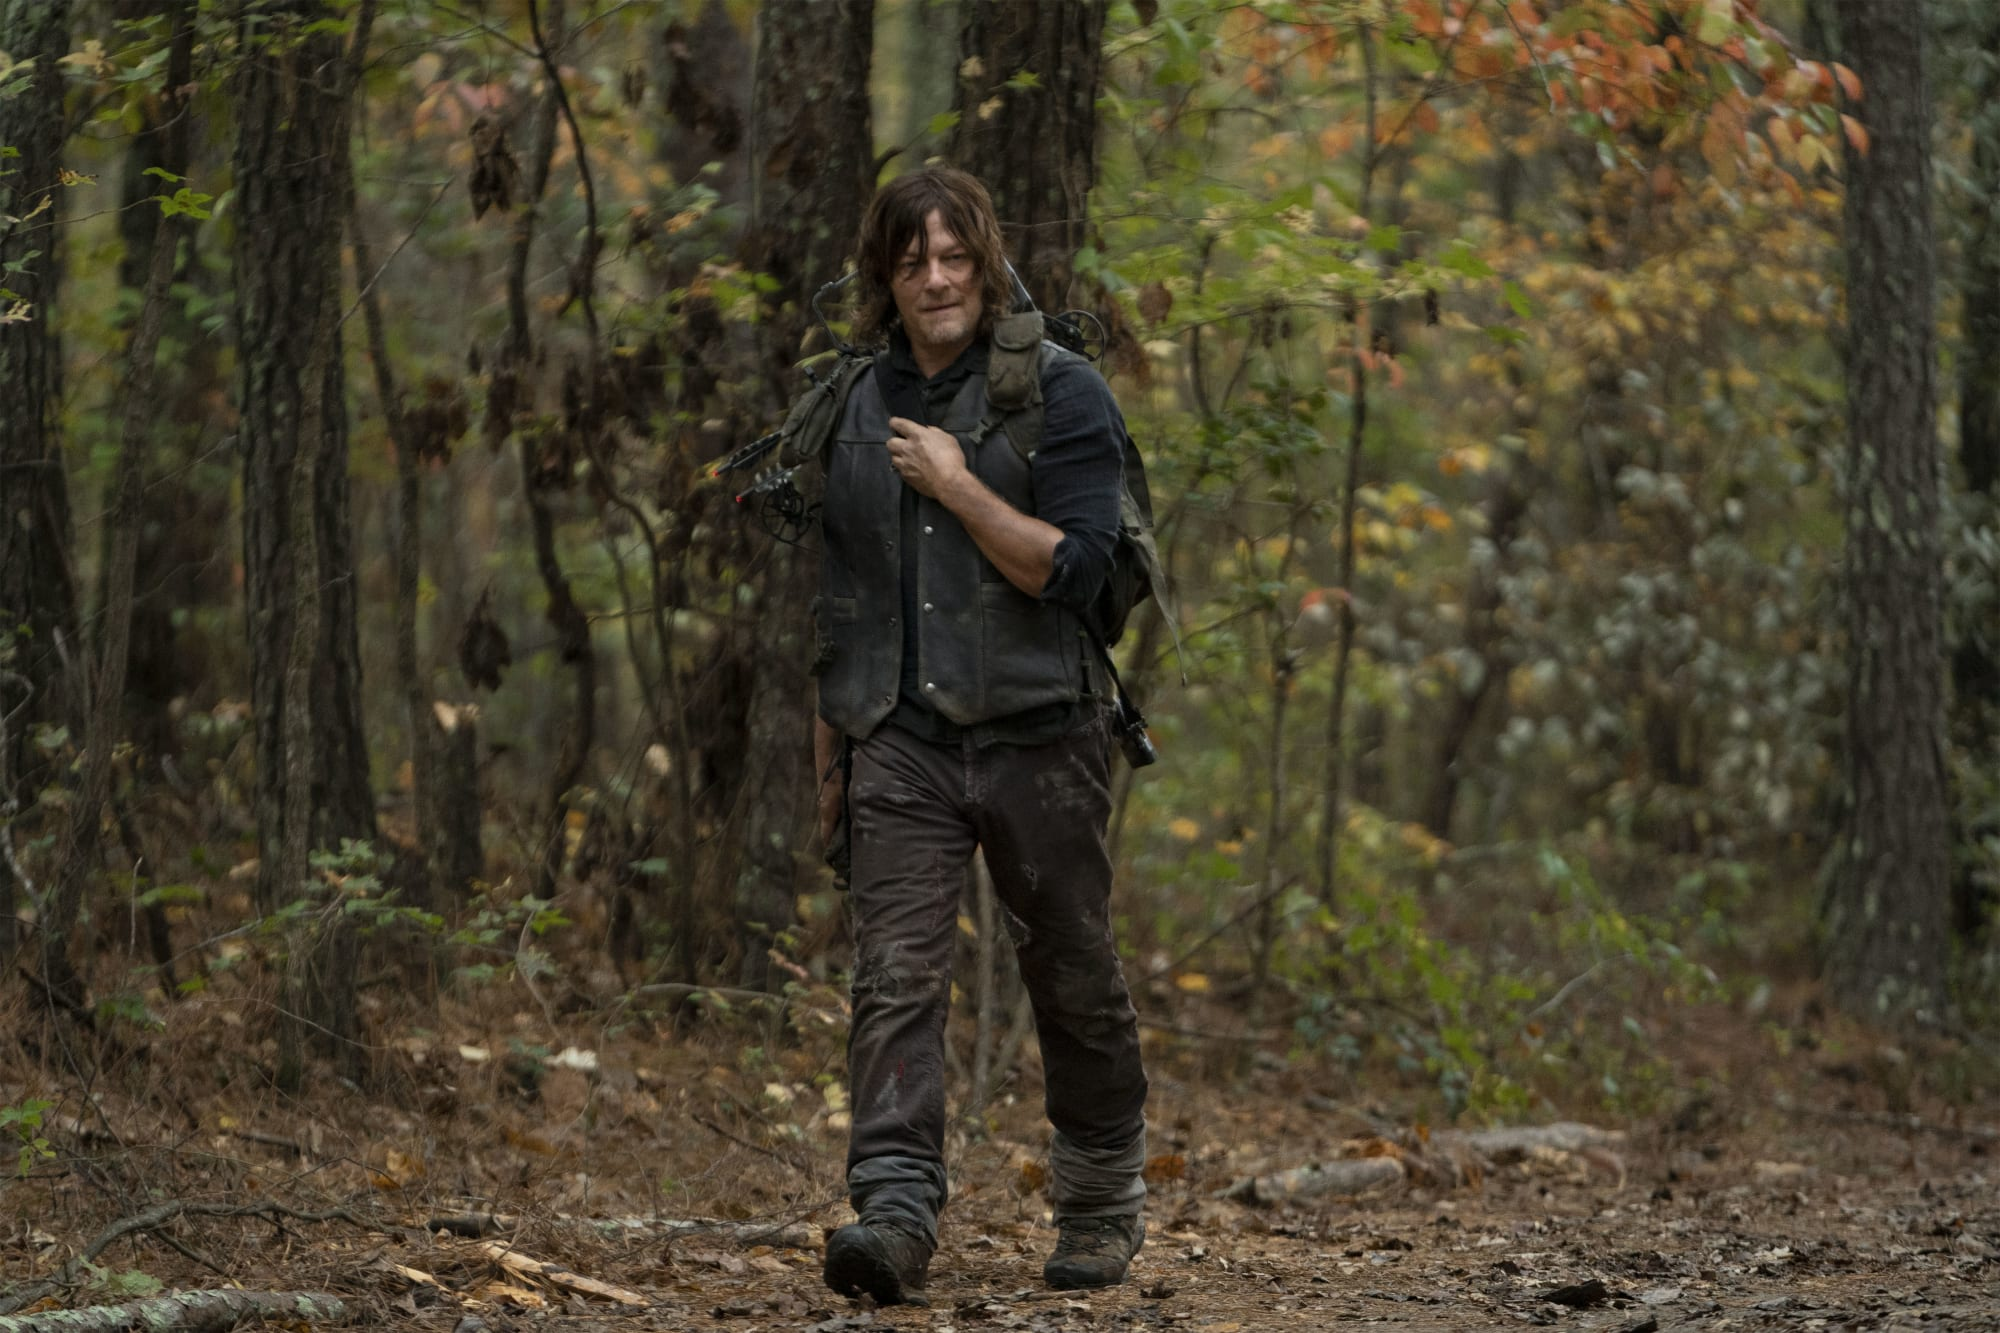 The Walking Dead: Episode 606, 'Always Accountable' and Daryl's dilemma